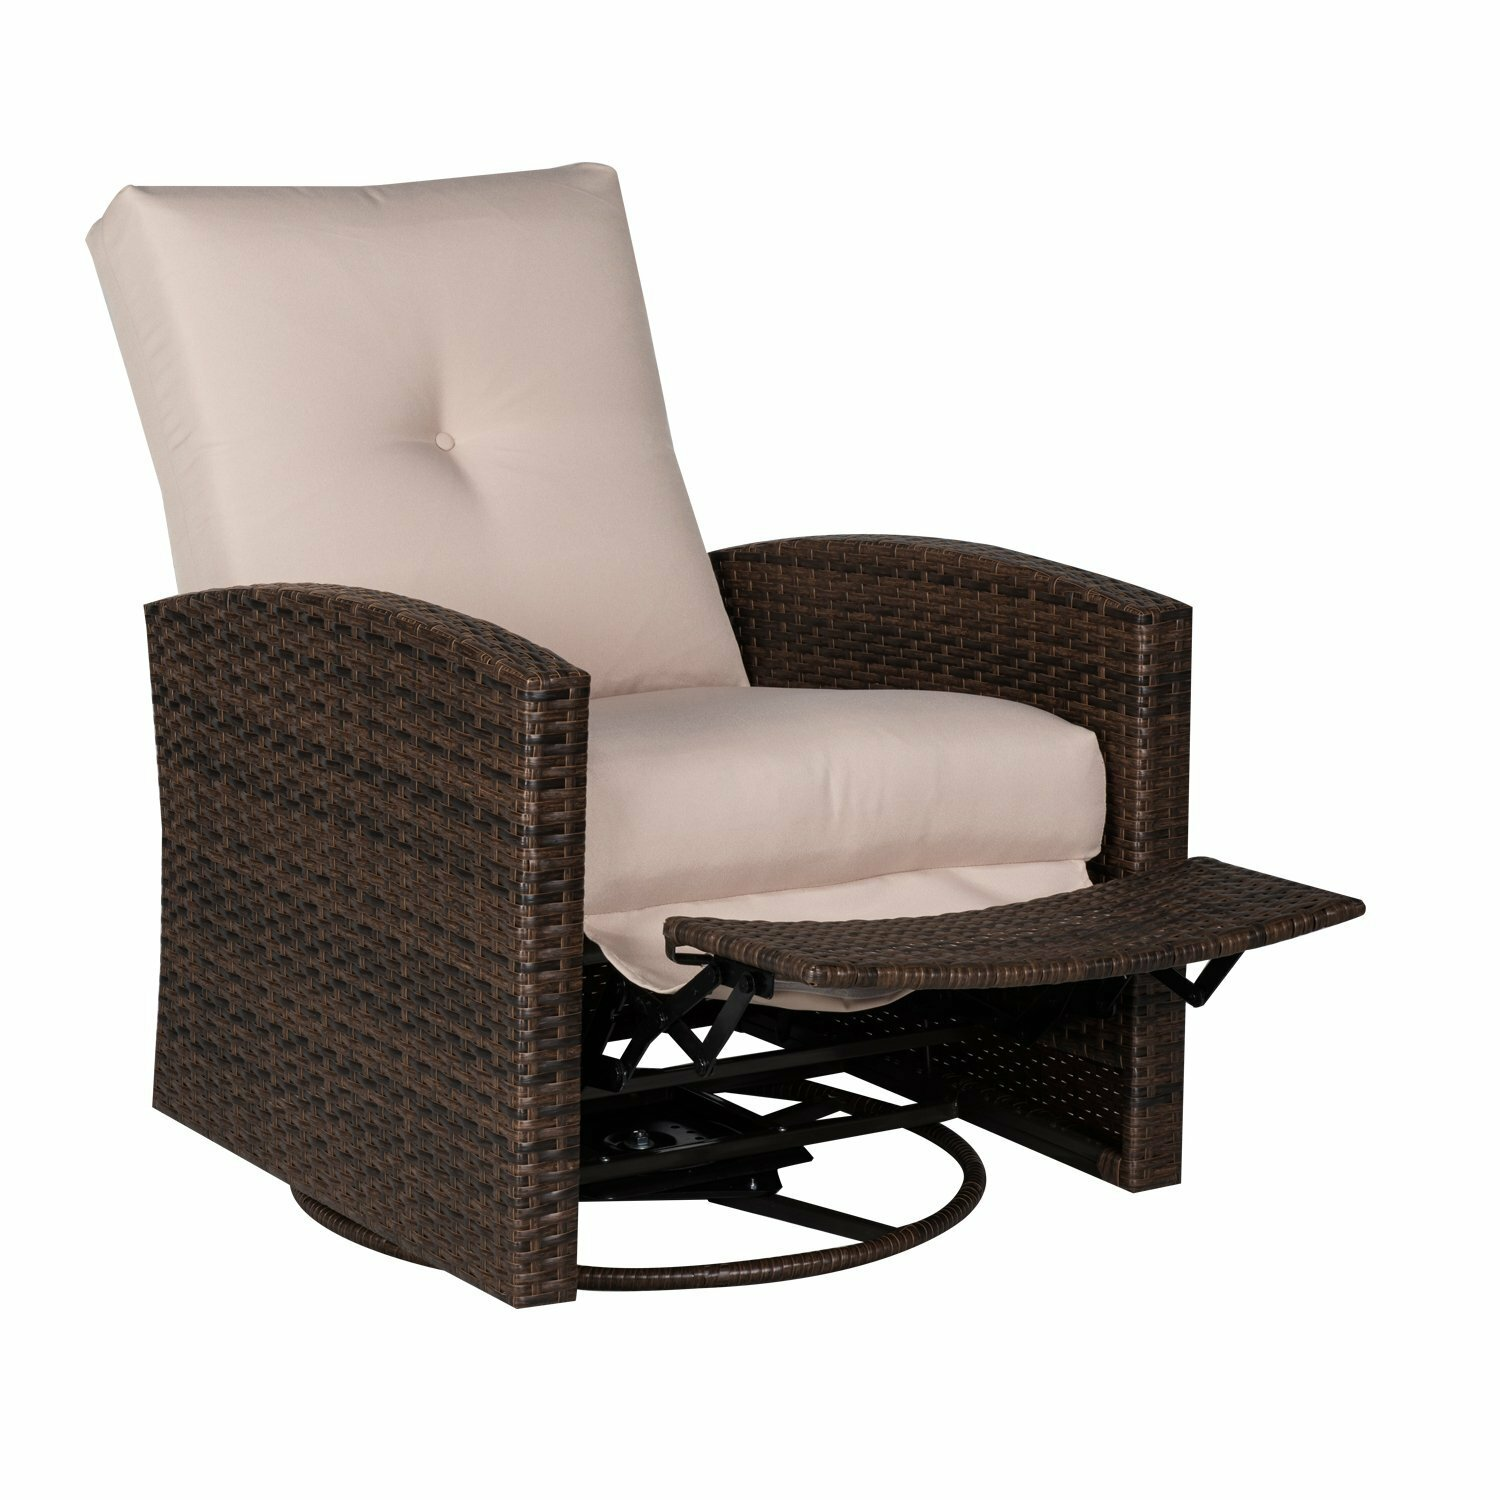 Outsunny Deluxe Swivel Patio Chair With